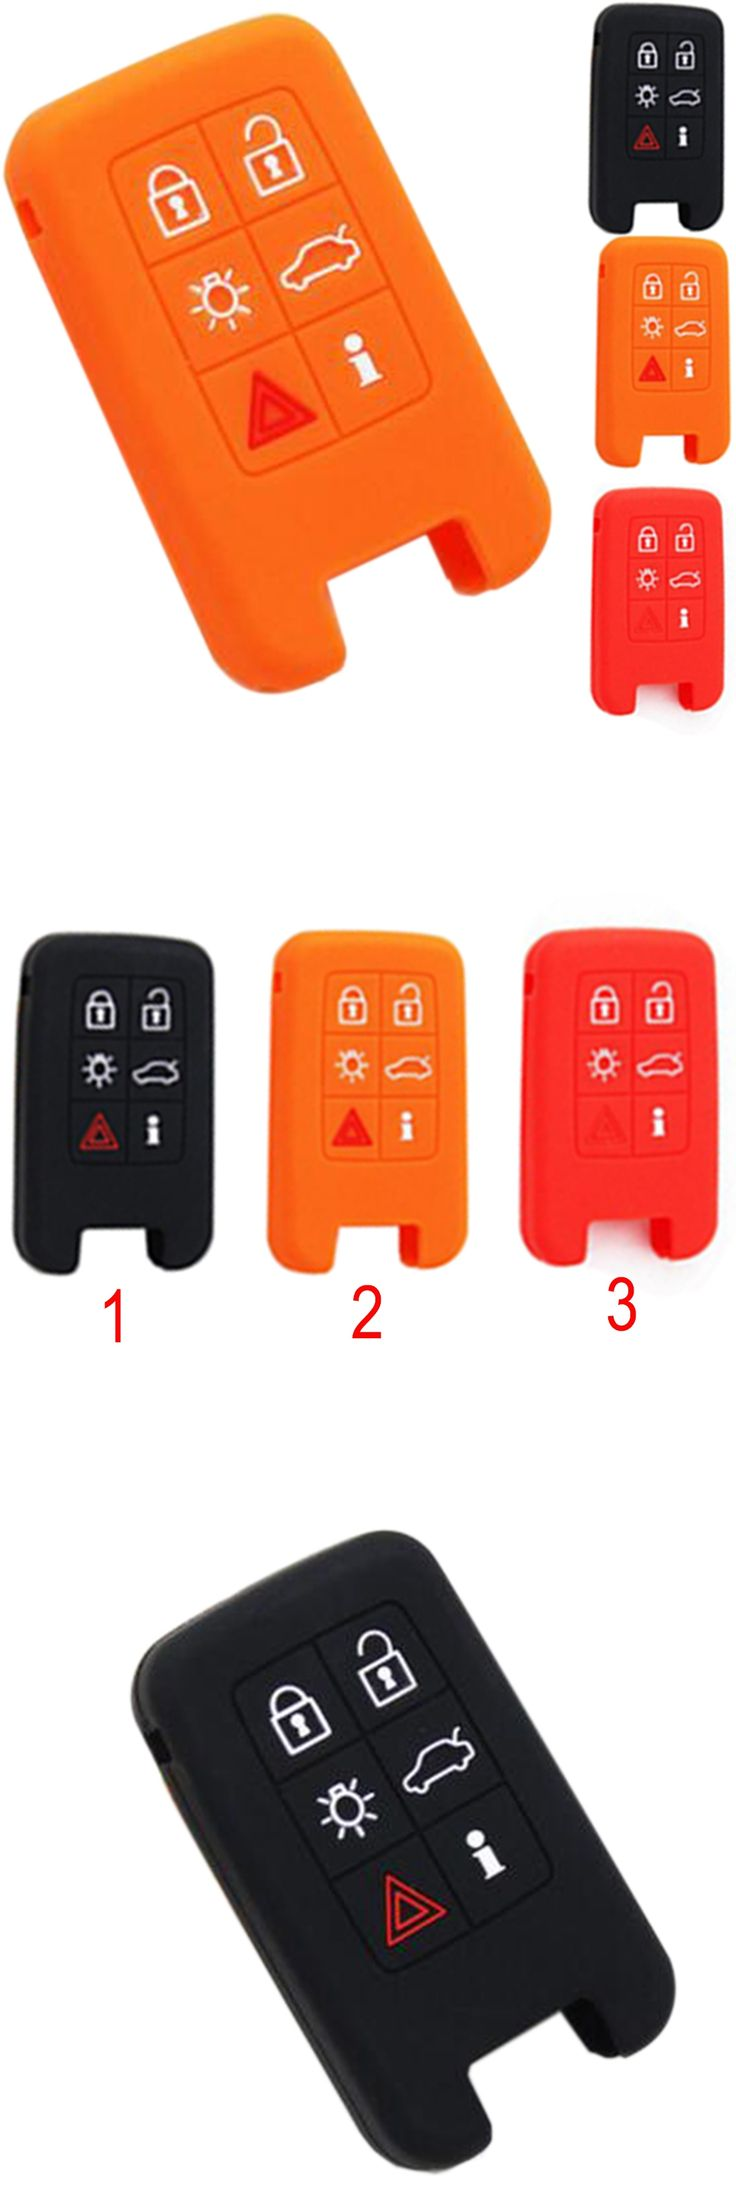 New Silicone Car Key Cover Silicone car key cover case for Volvo V40 S80 XC60 S60L V60 6buttons smart car key Cover